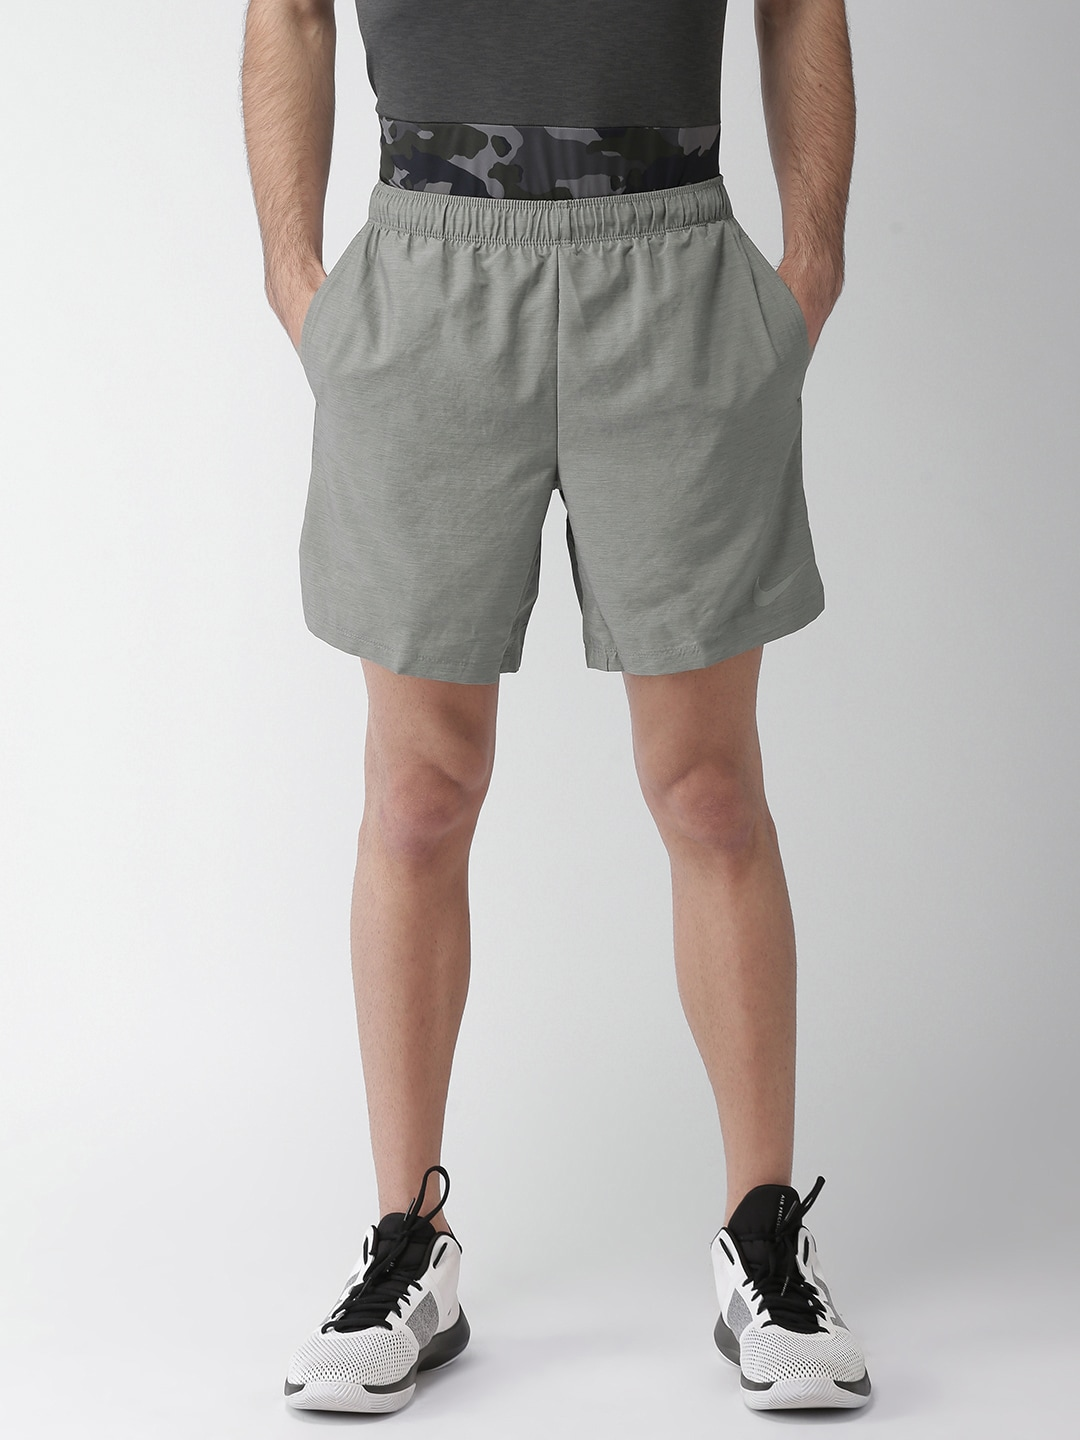 Nike Shorts - Buy Shorts from Nike Online Store  4c7682de0